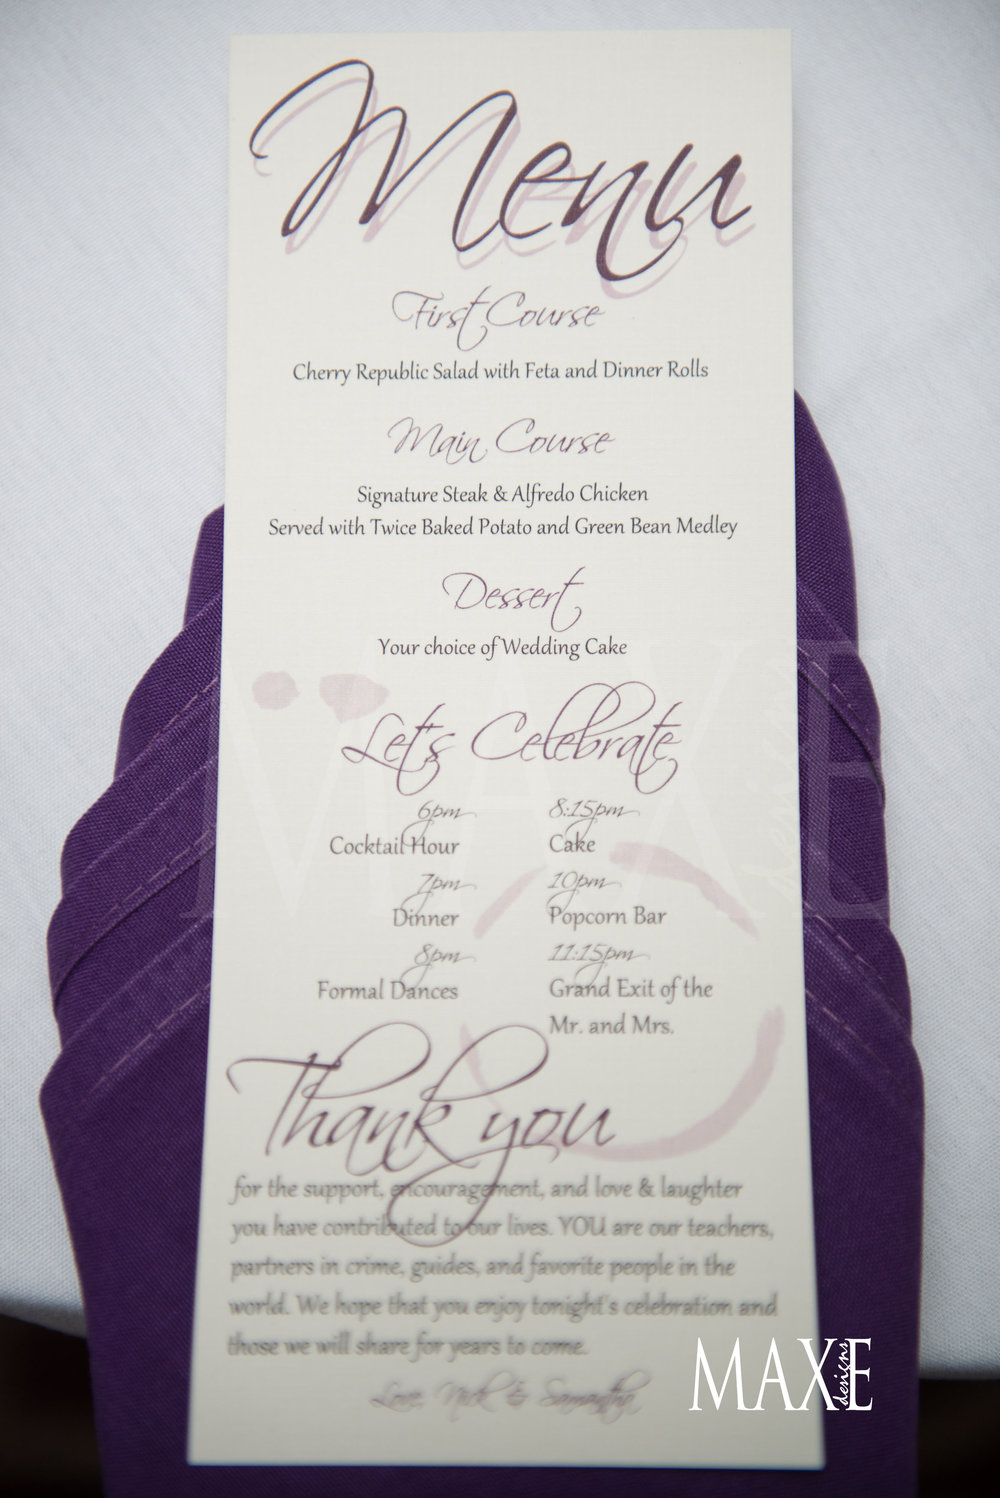 What a yummy wedding reception menu which included a timeline of the evenings events!